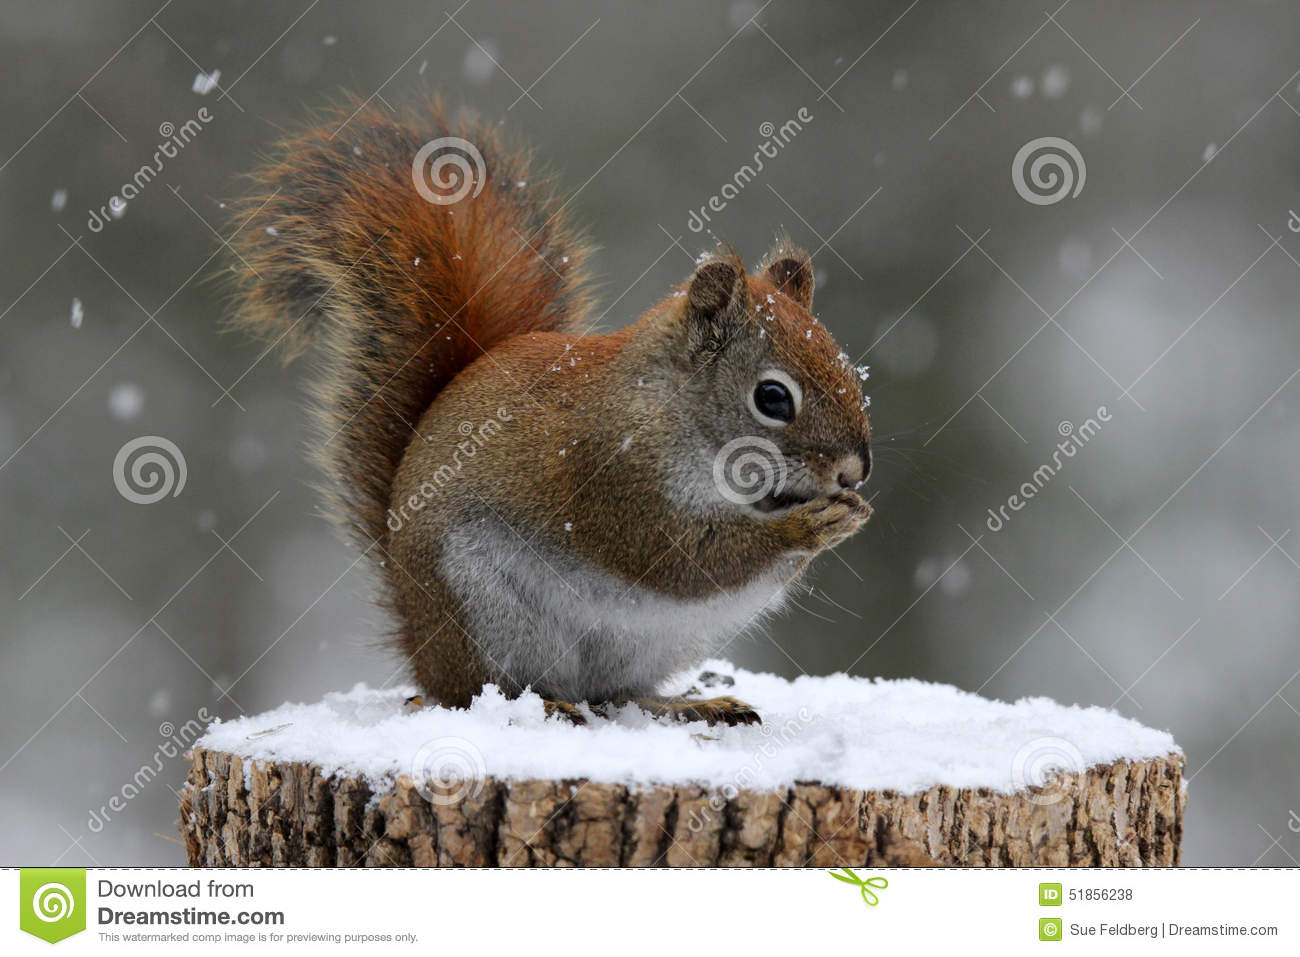 Red Squirrel Eating Seeds in Winter